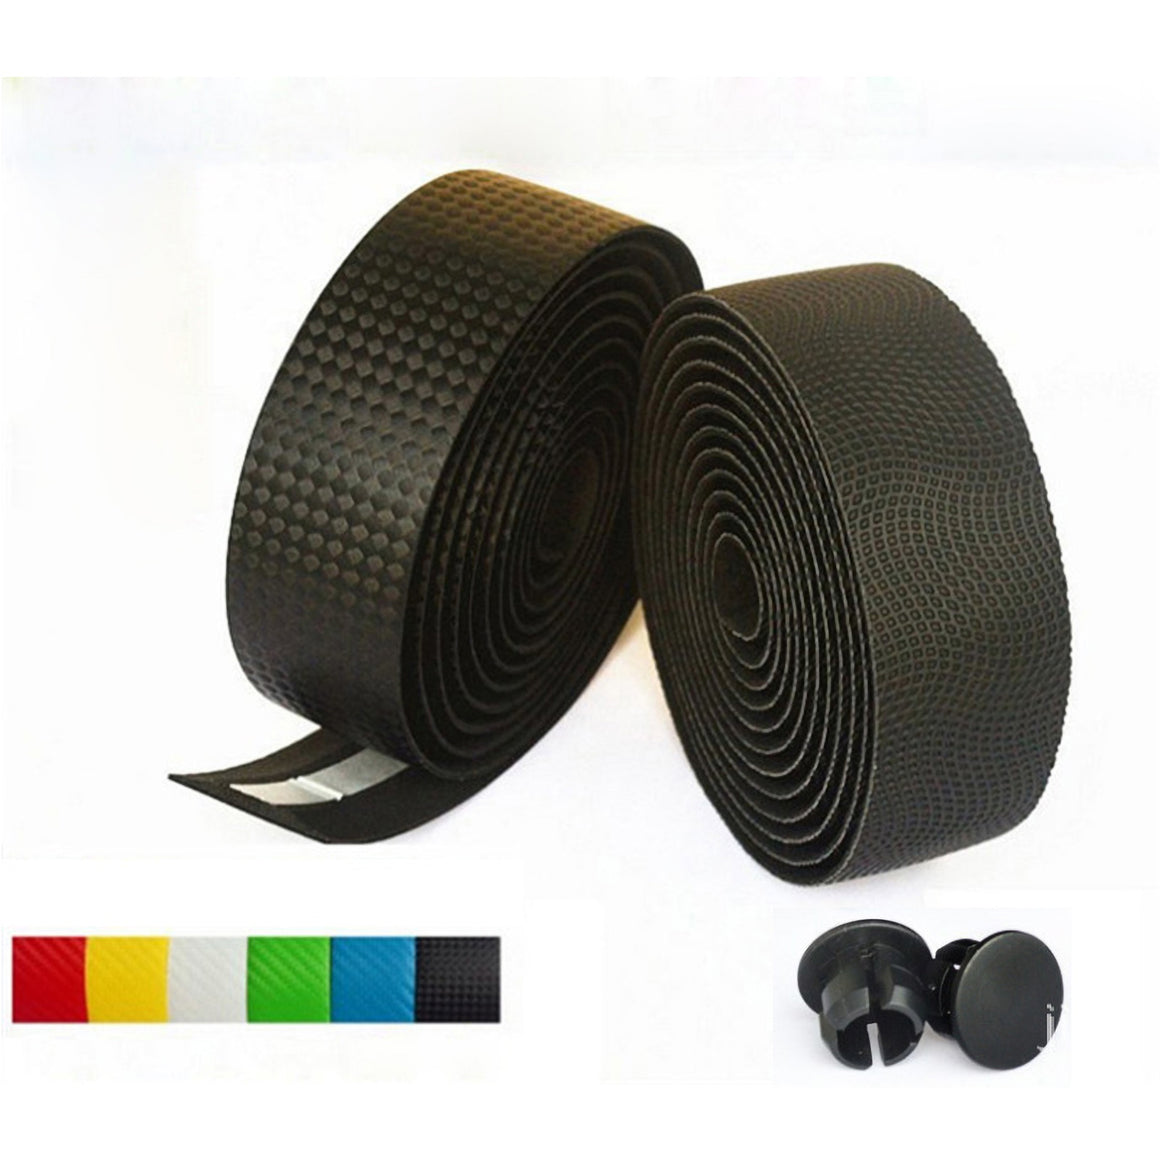 3M Road Carbon fiber Bike HandleBar Tape Cycling Race Bicycle Grips MTB Cork Handlebar Tape +2 Bar Plugs Mountain belt straps